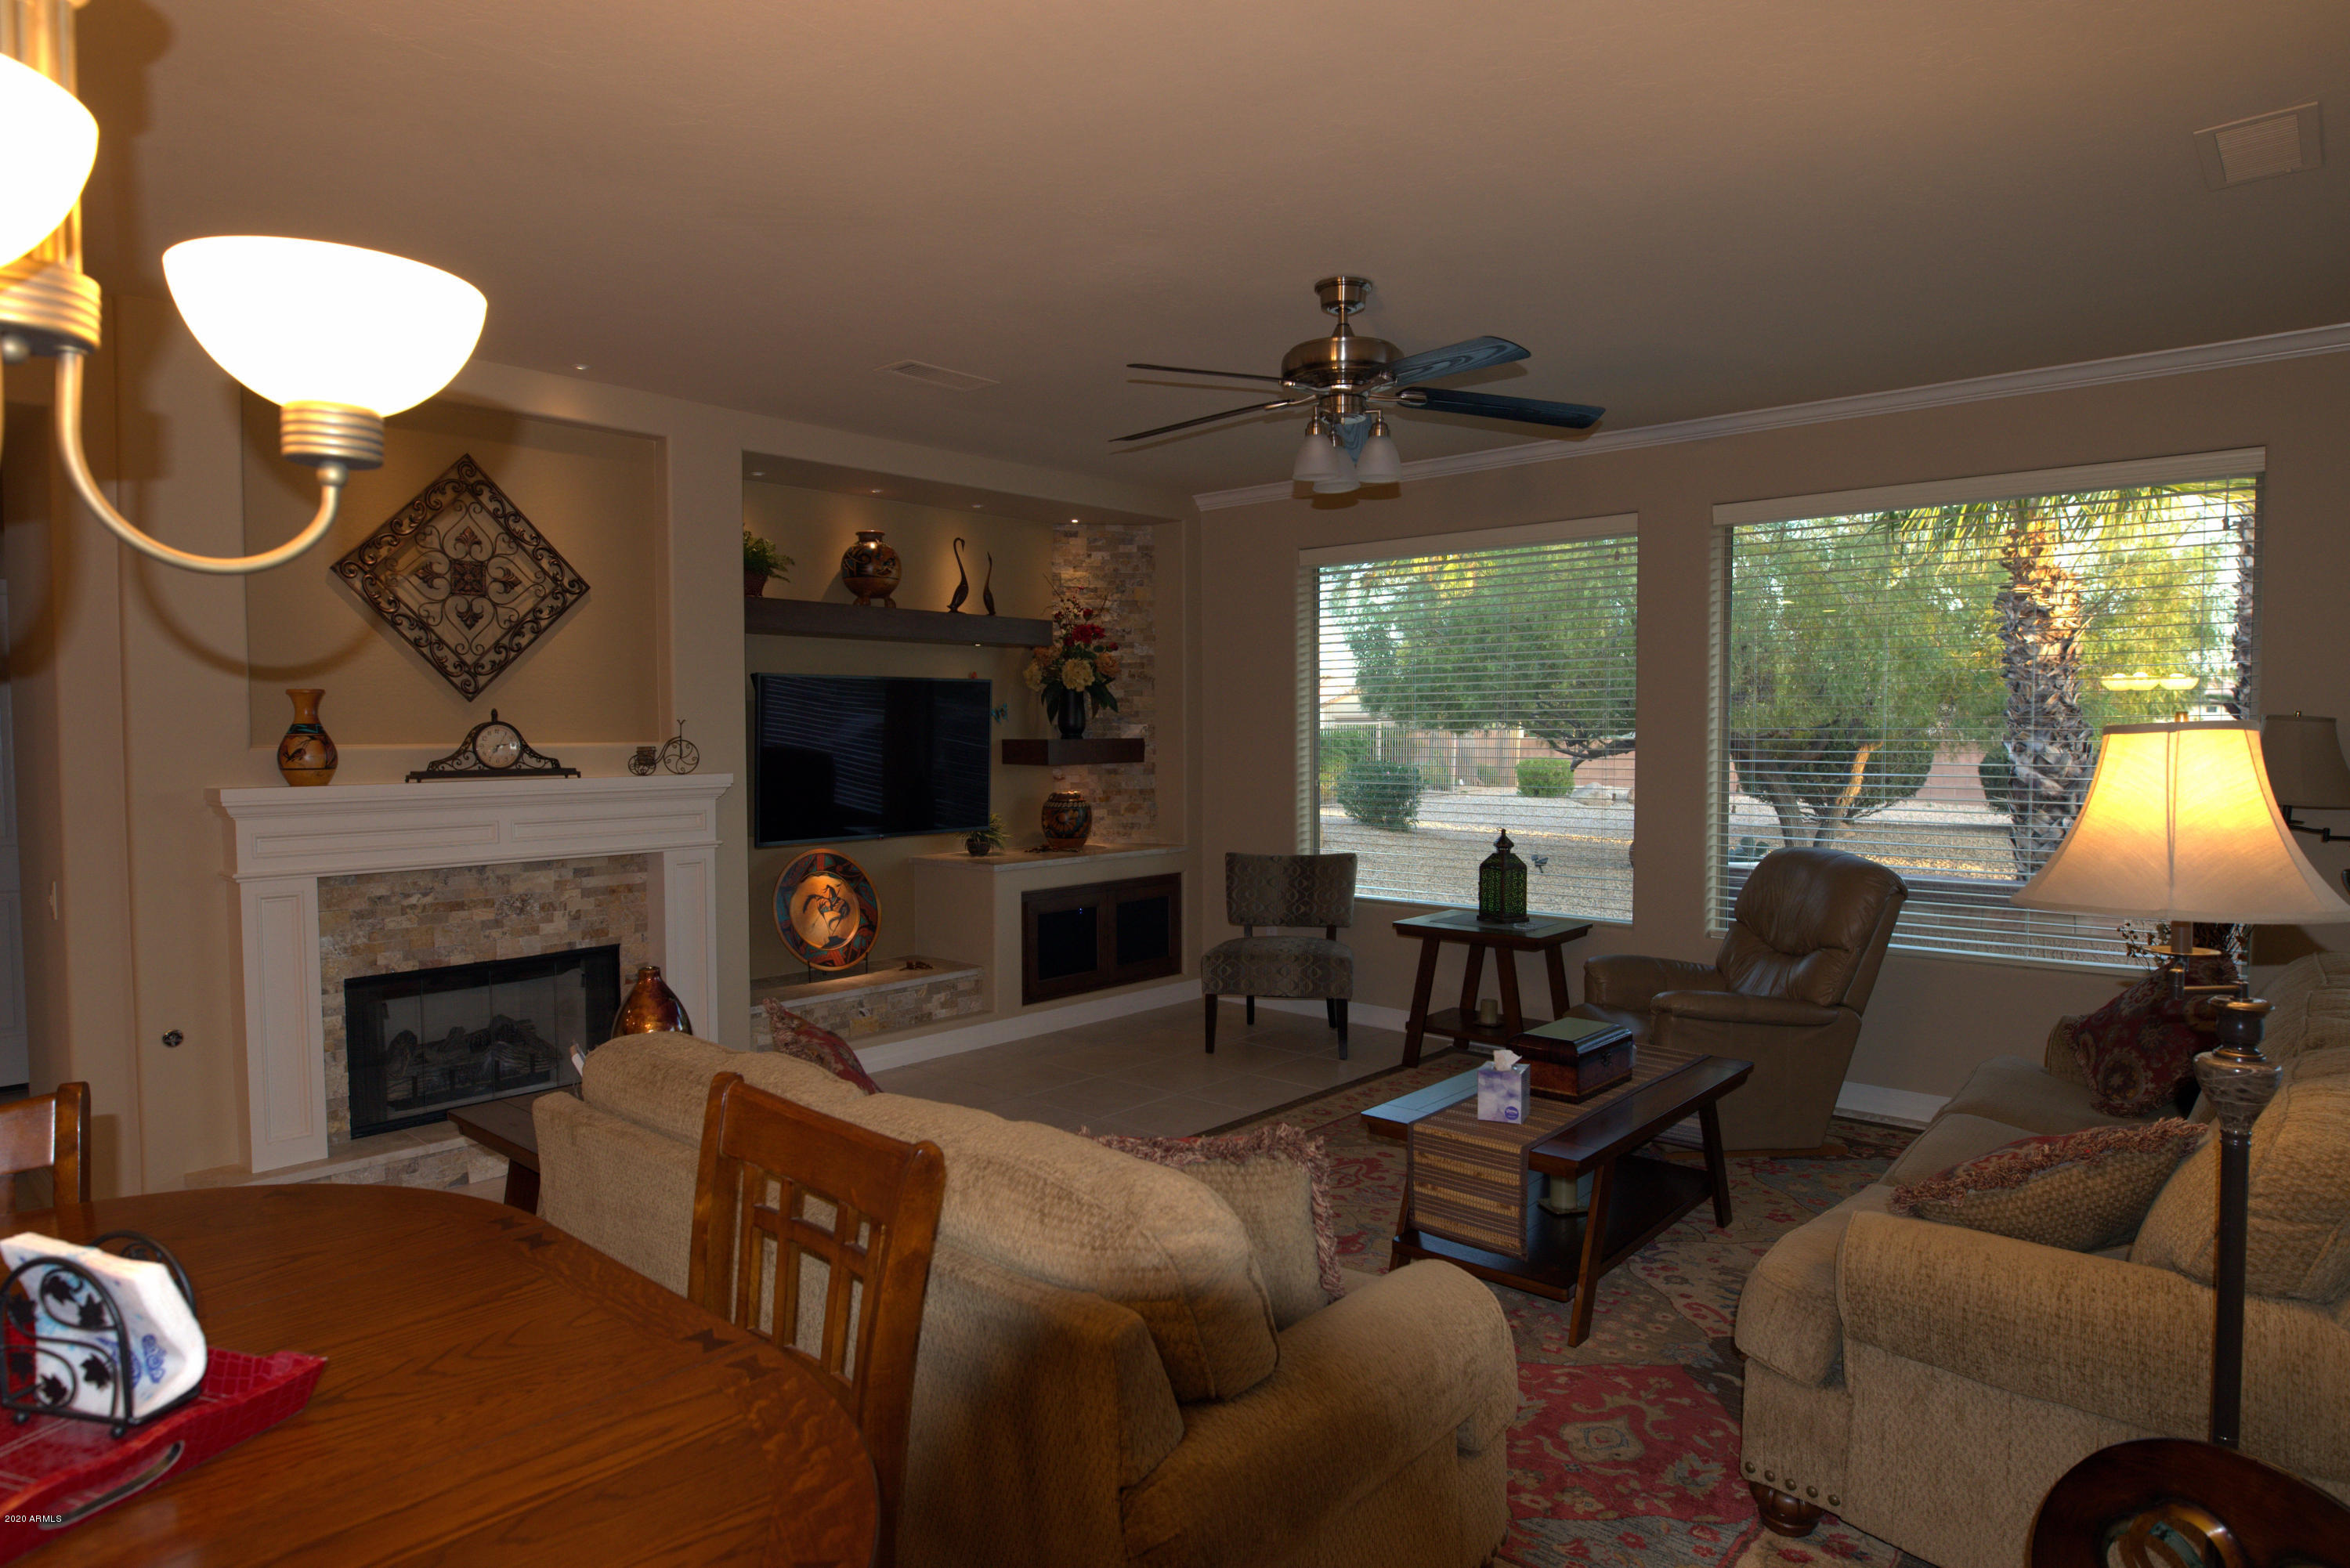 17158 W LAIRD Court, Surprise, AZ 85387, 2 Bedrooms Bedrooms, ,Residential Lease,For Rent,17158 W LAIRD Court,6034345